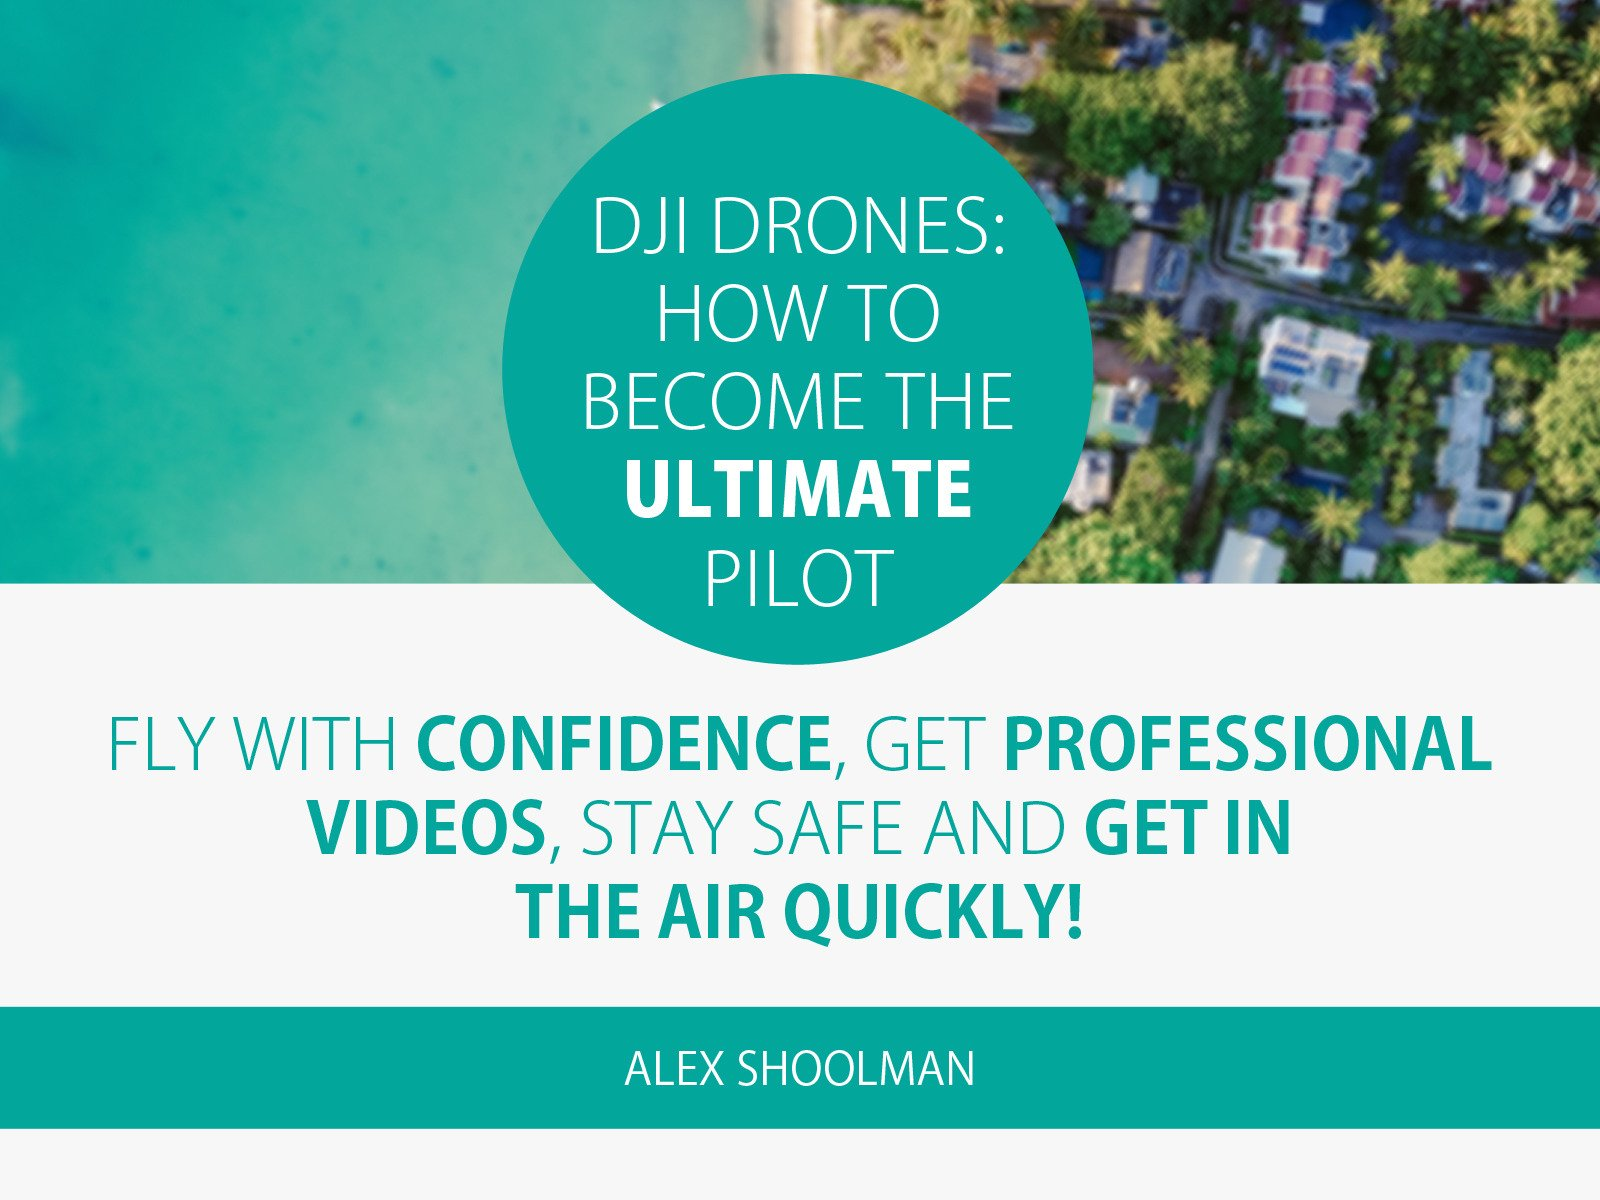 DJI Drones: How To Become The Ultimate Pilot